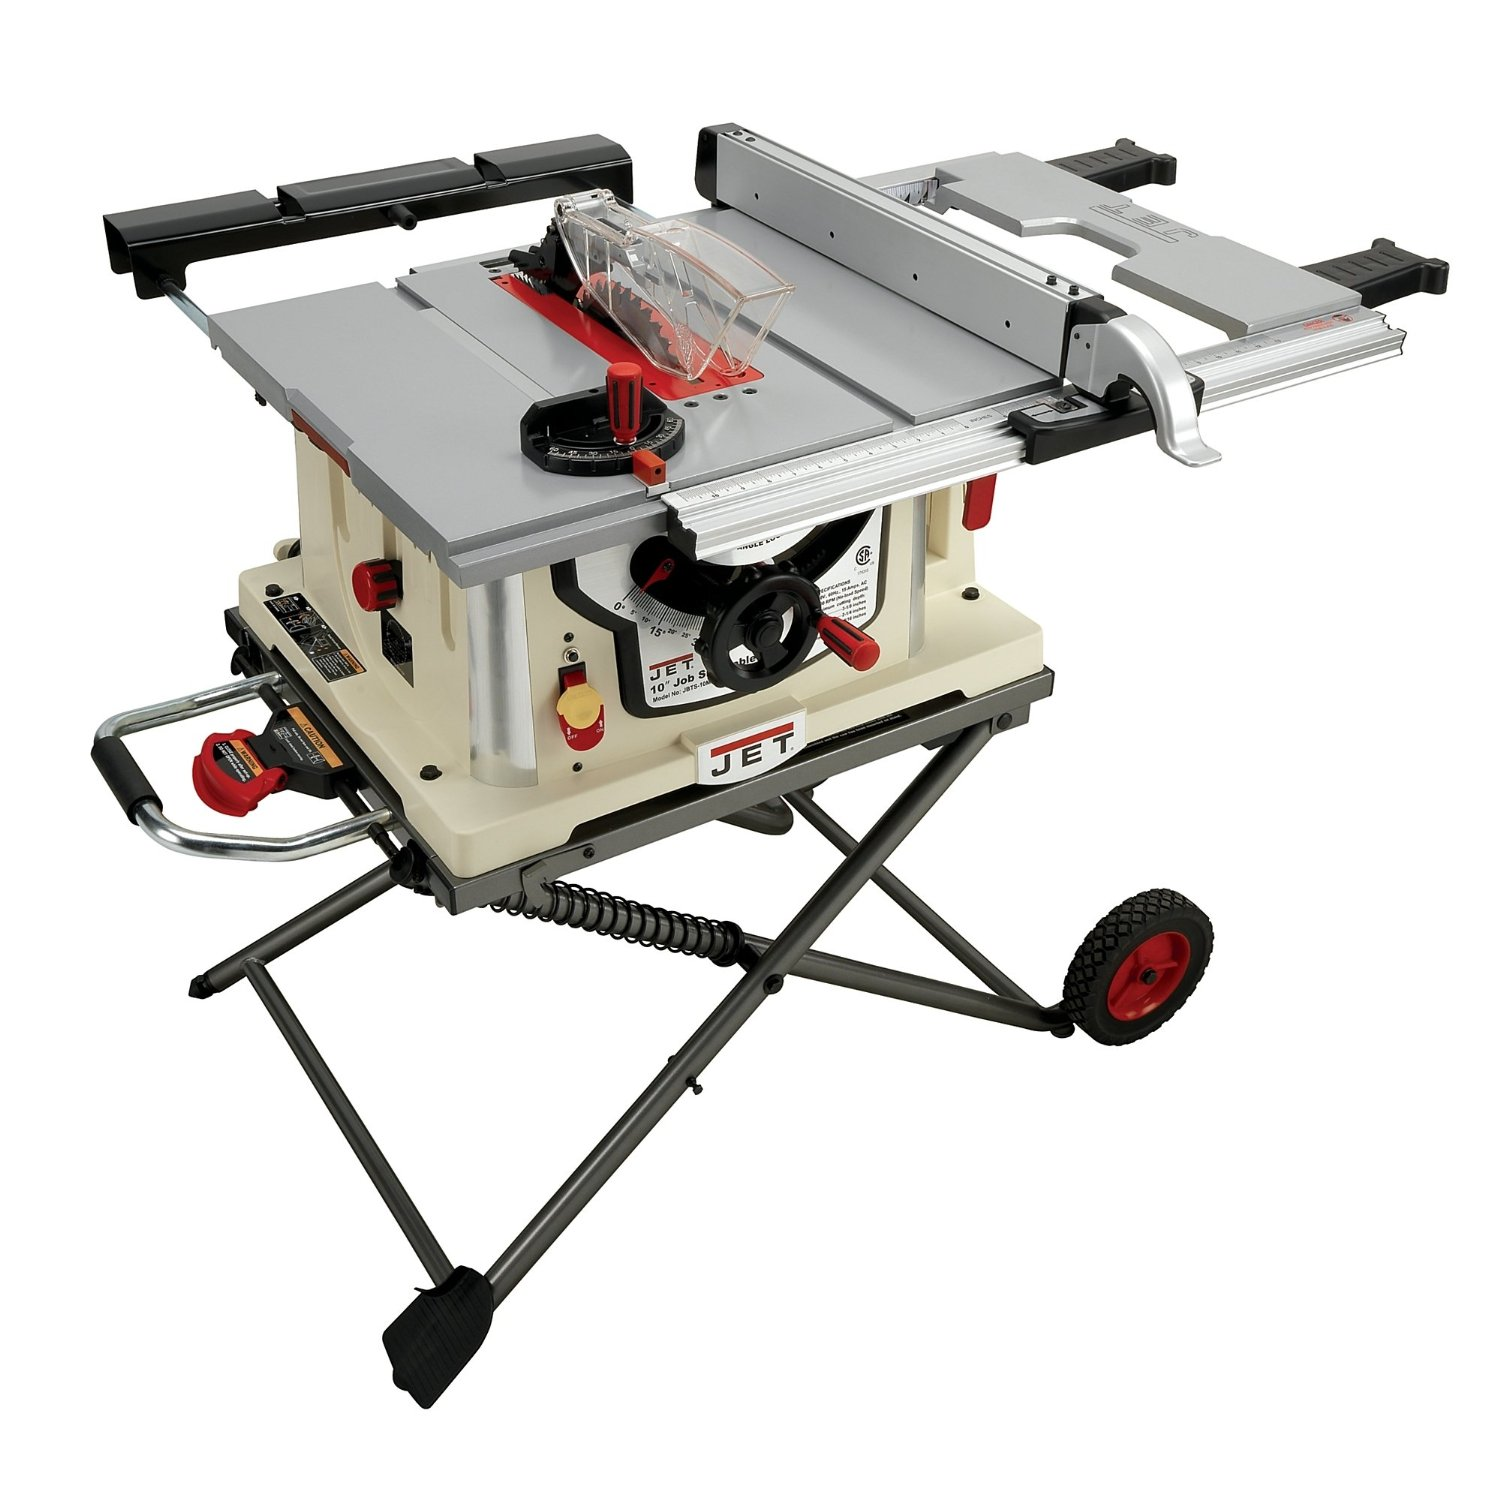 Jet jbts 10mjs review table saw central Portable table saw reviews